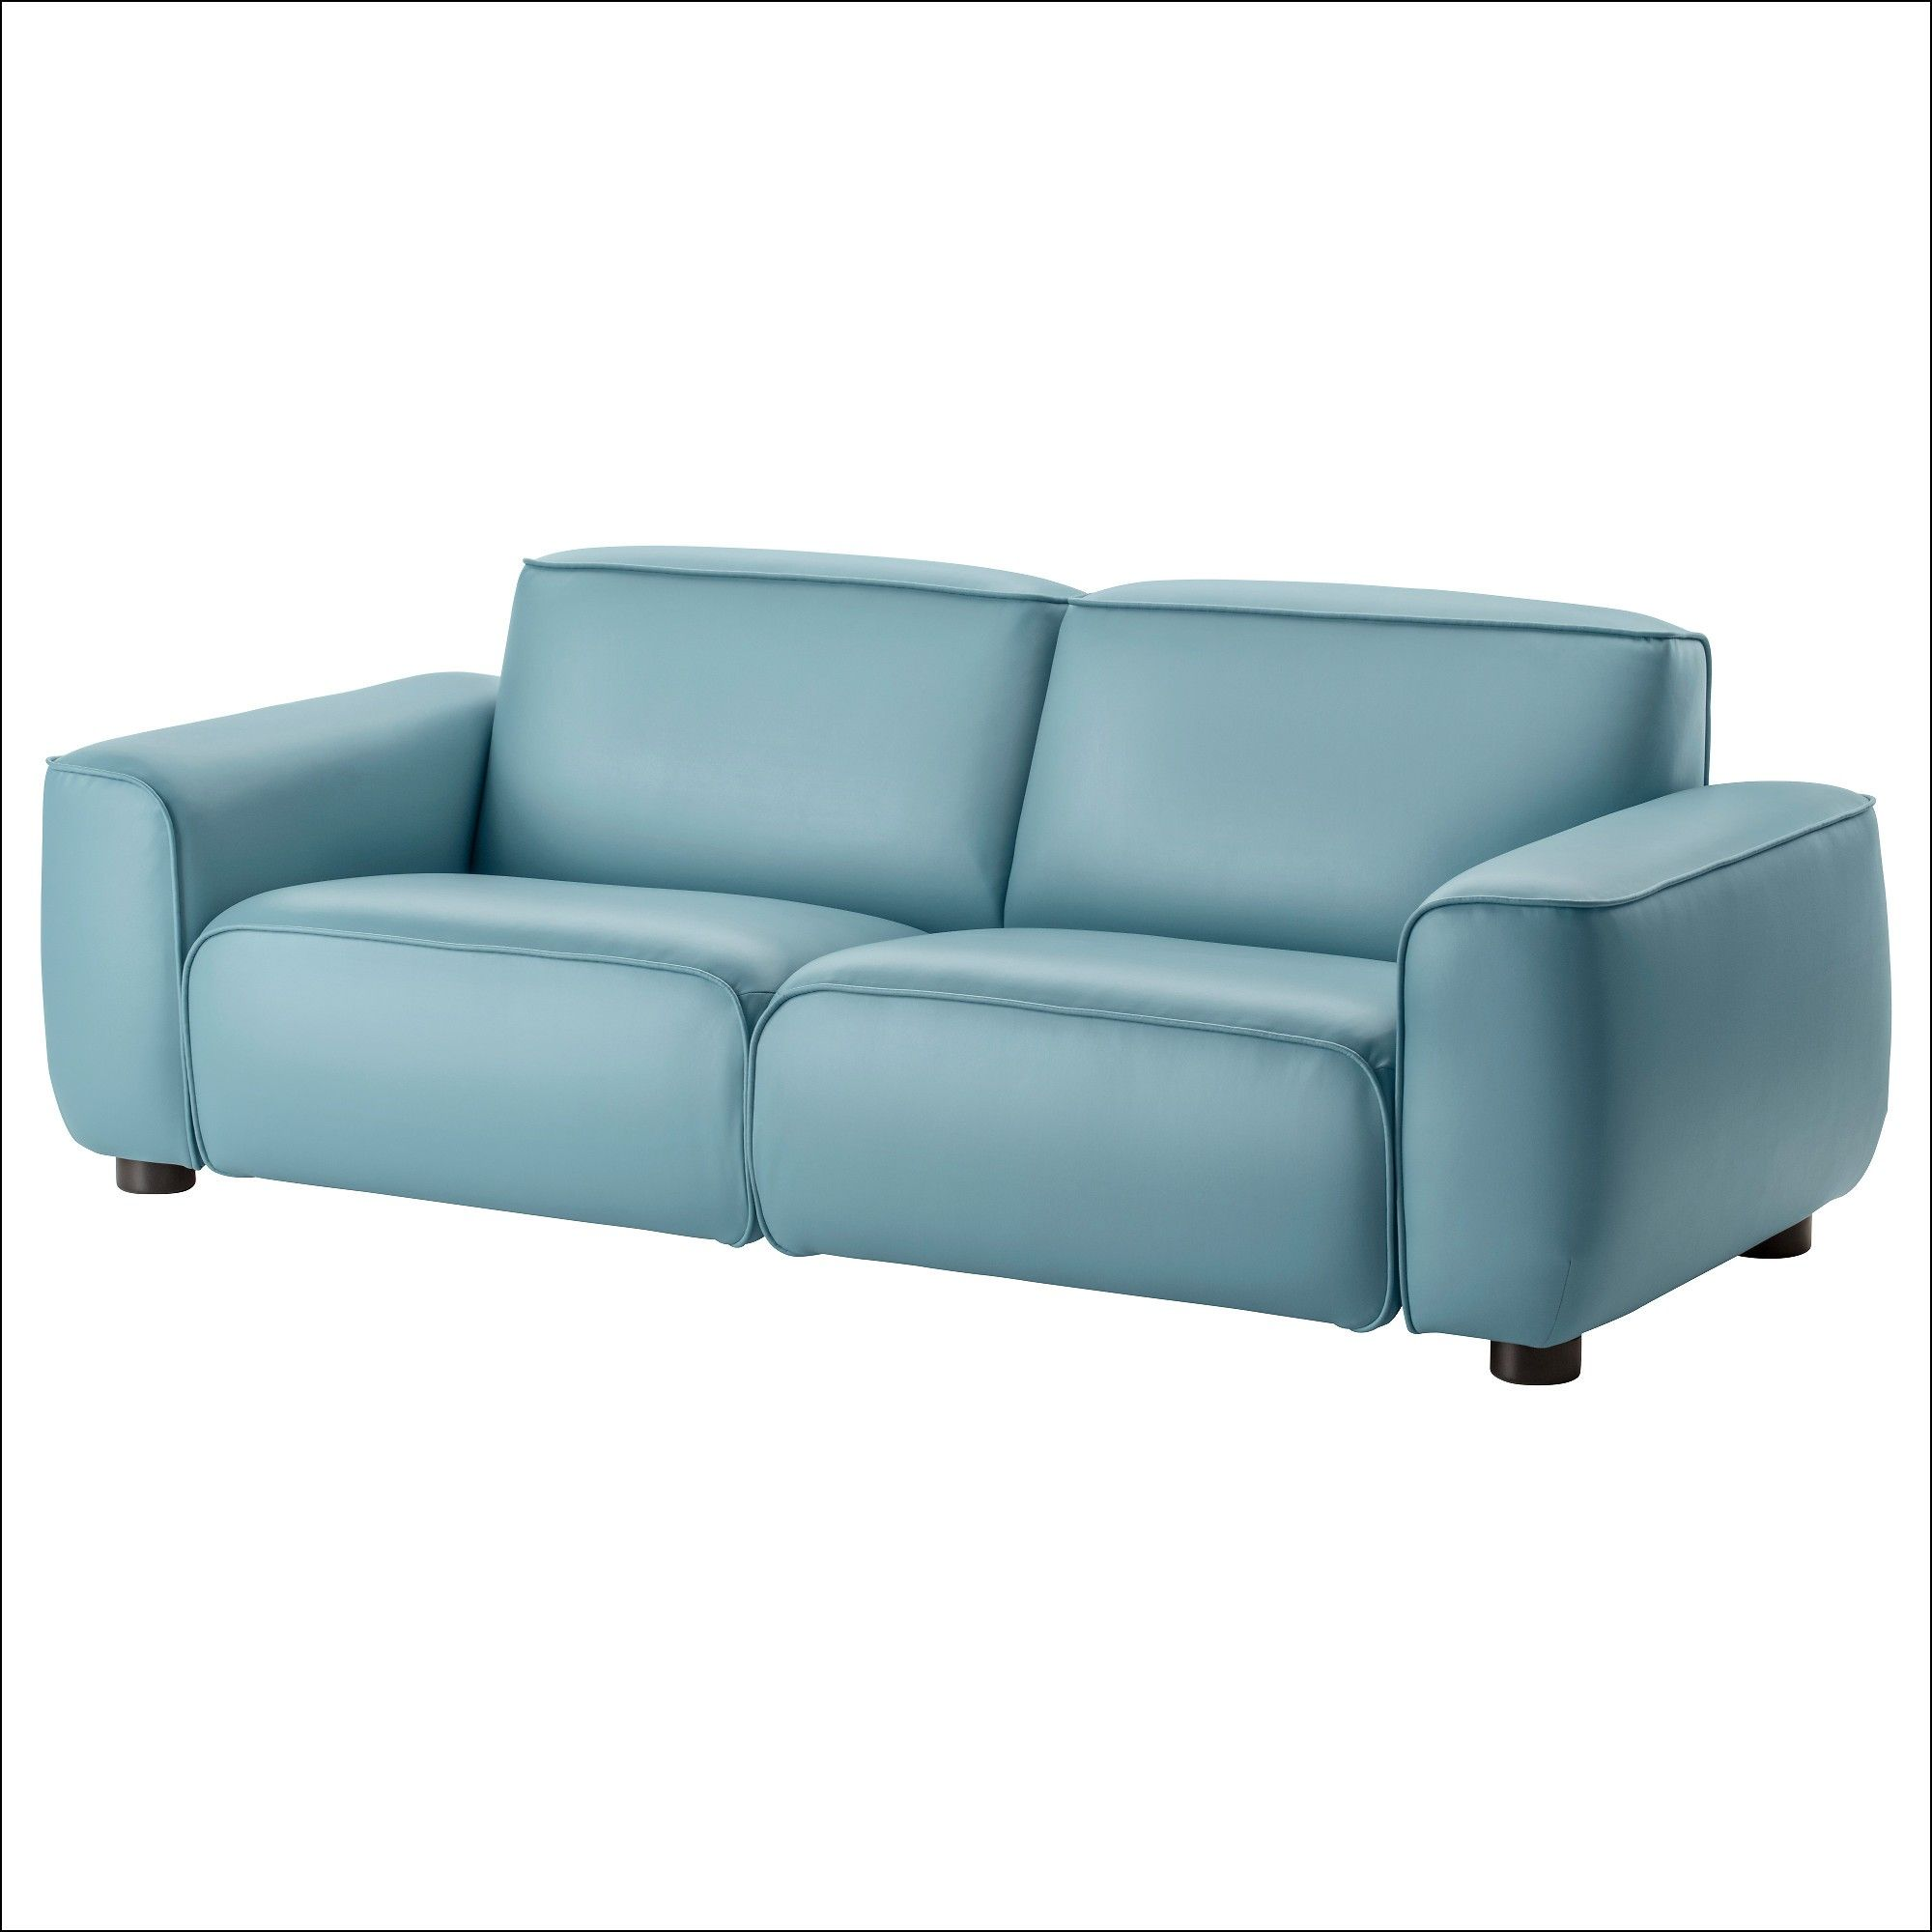 Bettsofa Ikea Blau Blue Leather Sofa Ikea Sofa Blue Leather Sofa Ikea Sofa